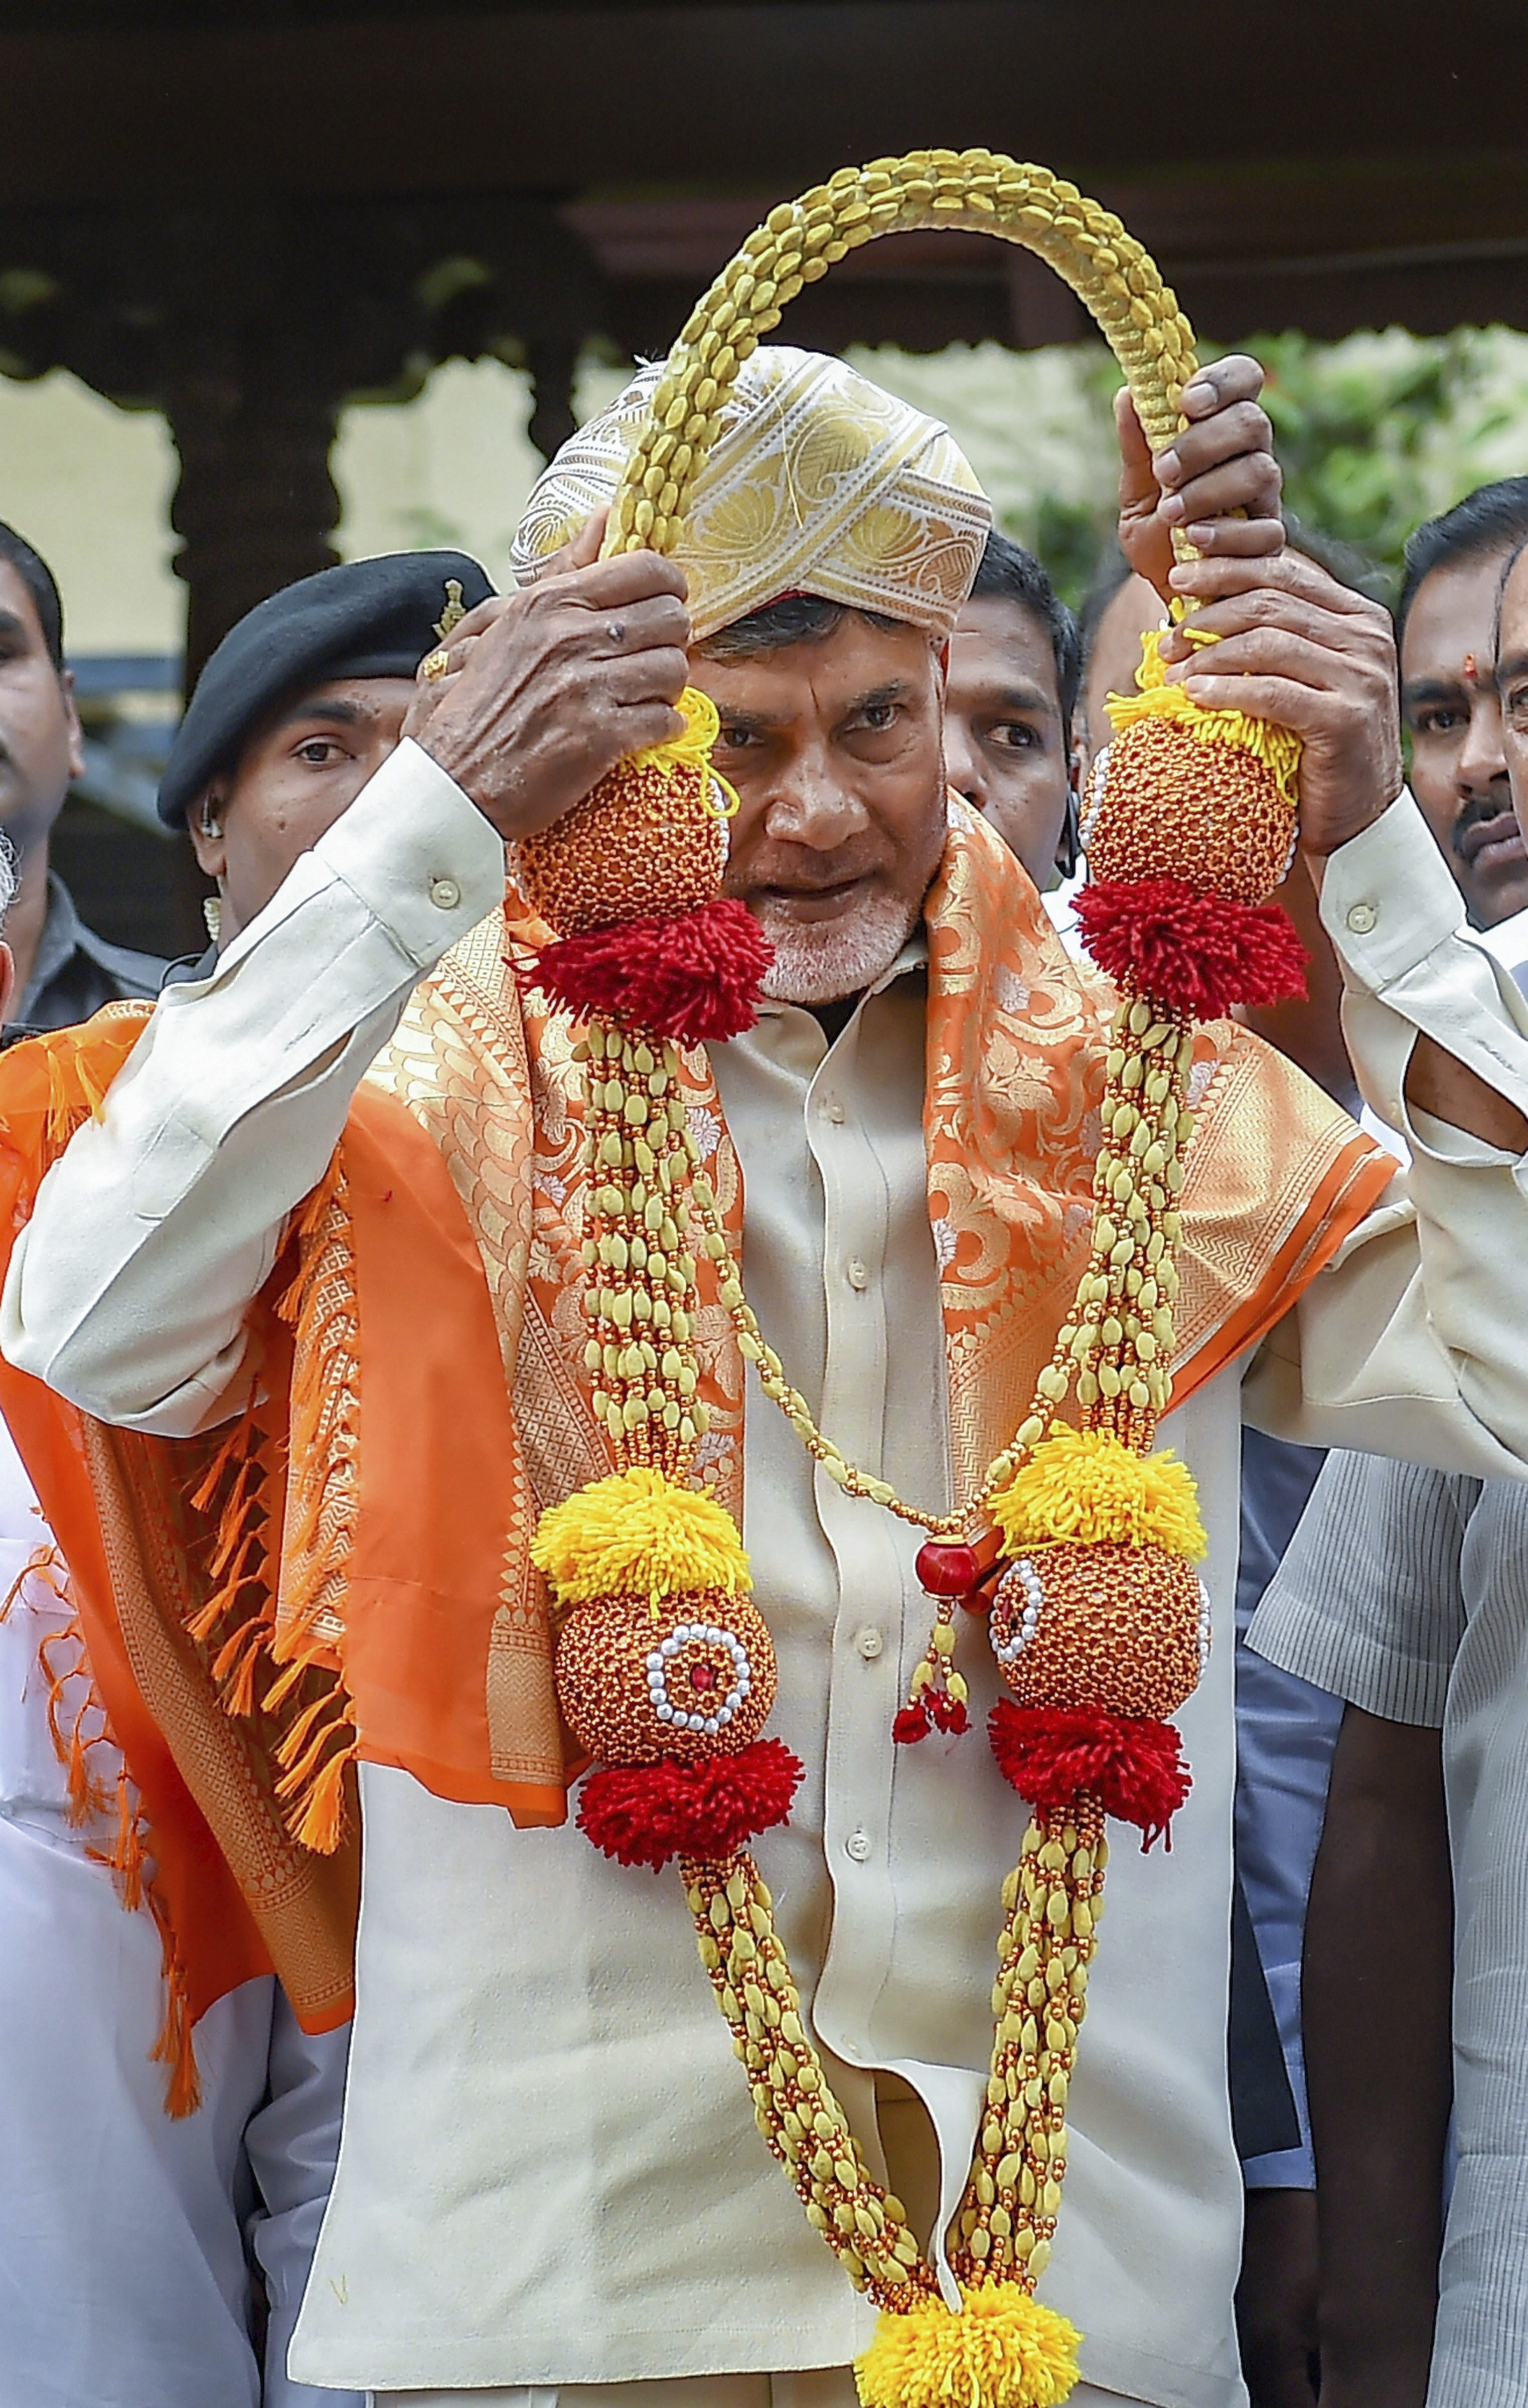 Andhra Pradesh Chief Minister N Chandrababu Naidu wears a Mysore peta and a garland presented to him by JD(S) chief and former prime minister HD Devegowda (unseen) during a meeting in Bengaluru - PTI